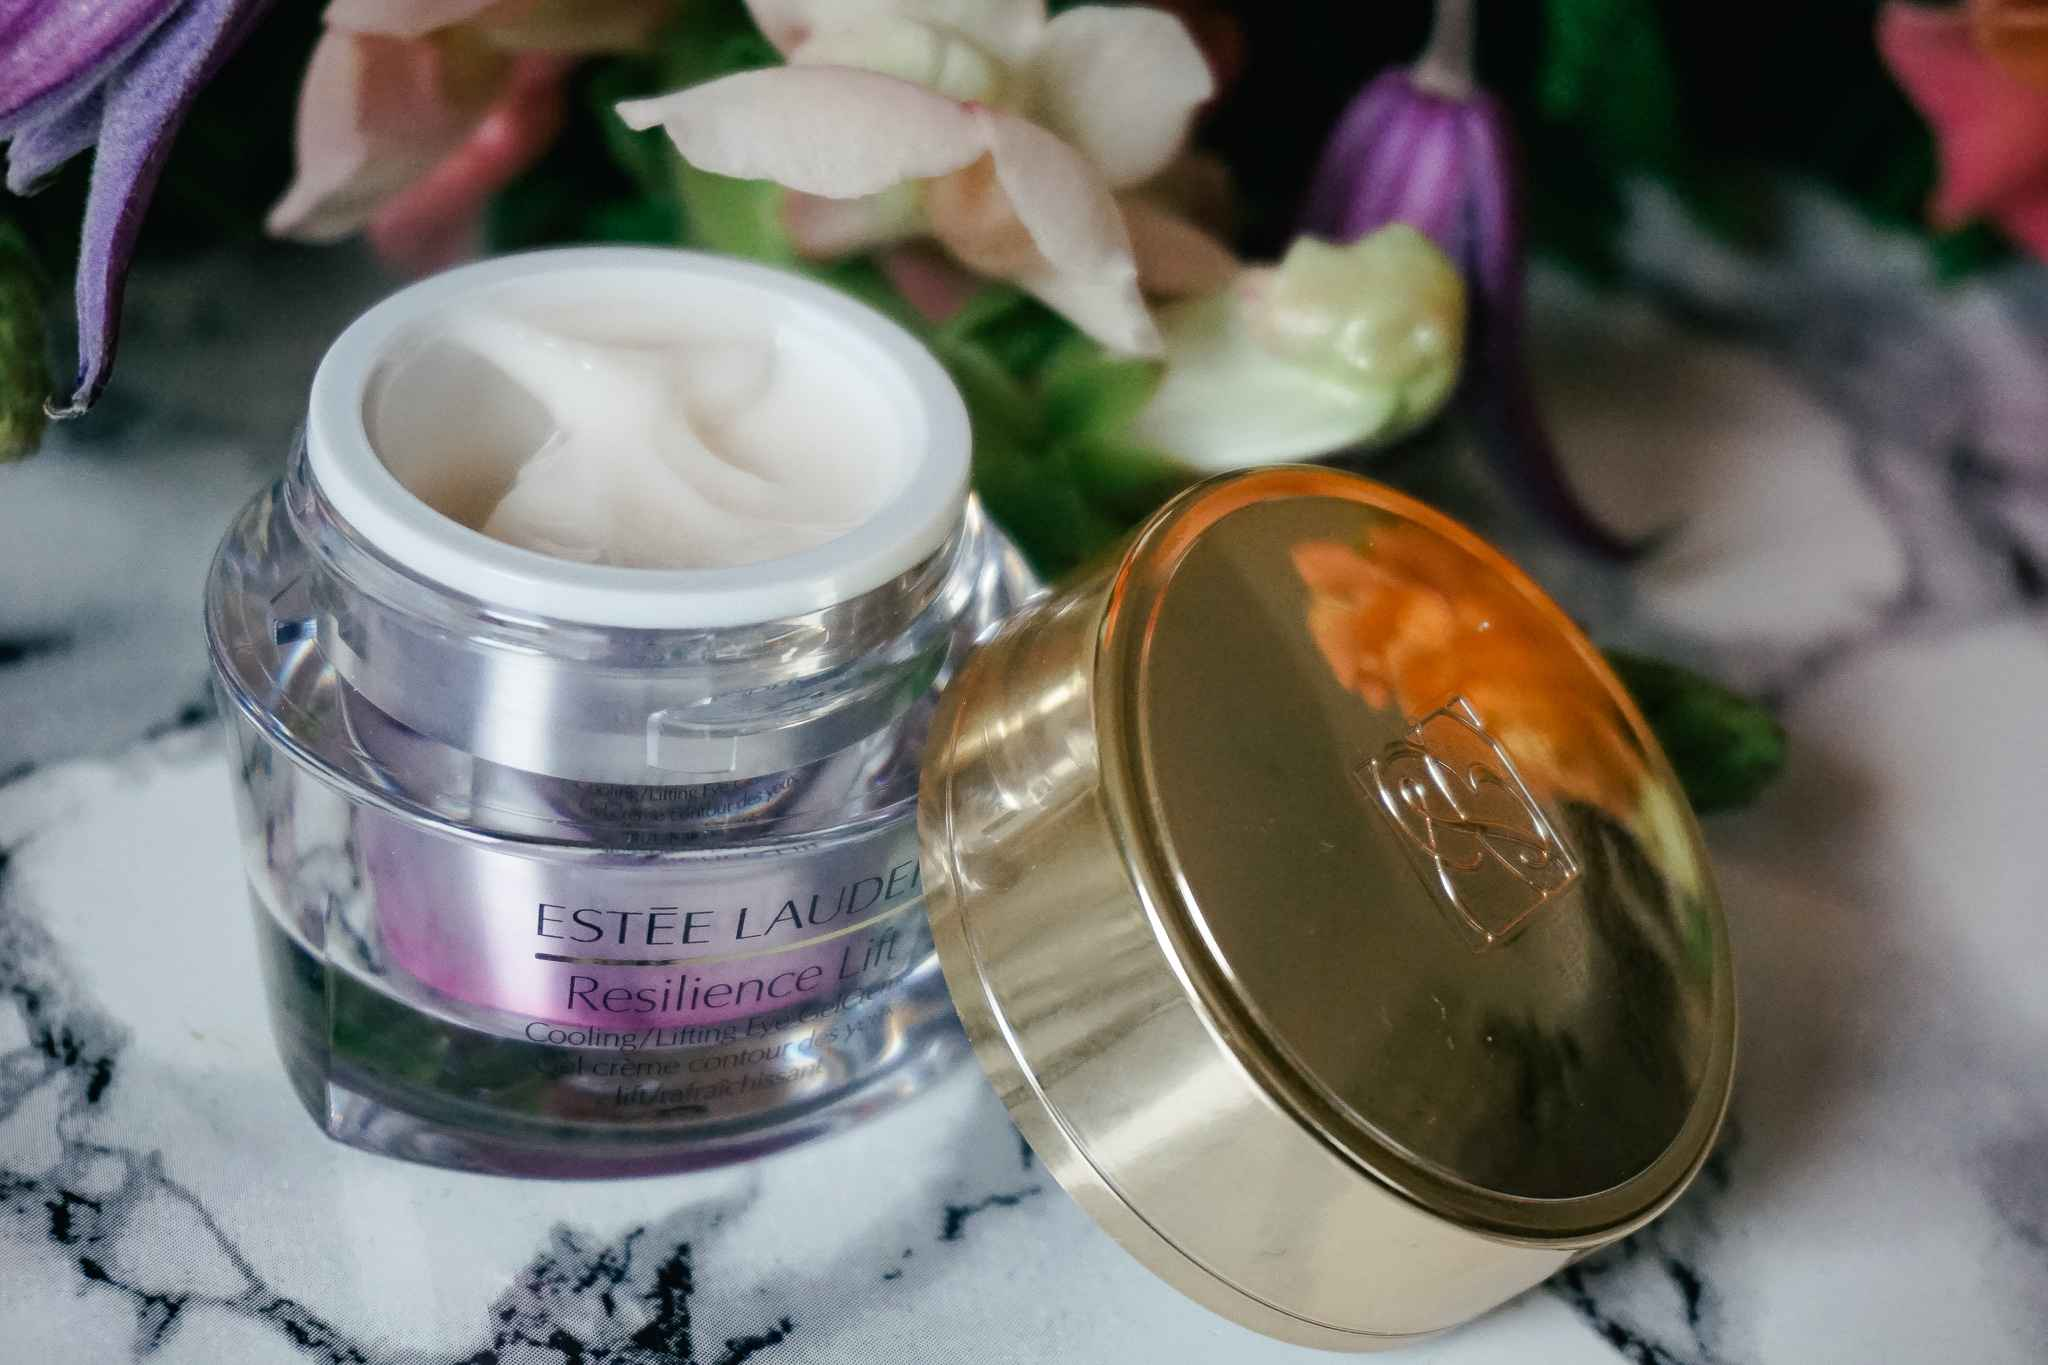 Estee Lauder Resilience Lift Cooling/Lifting Eye GelCreme